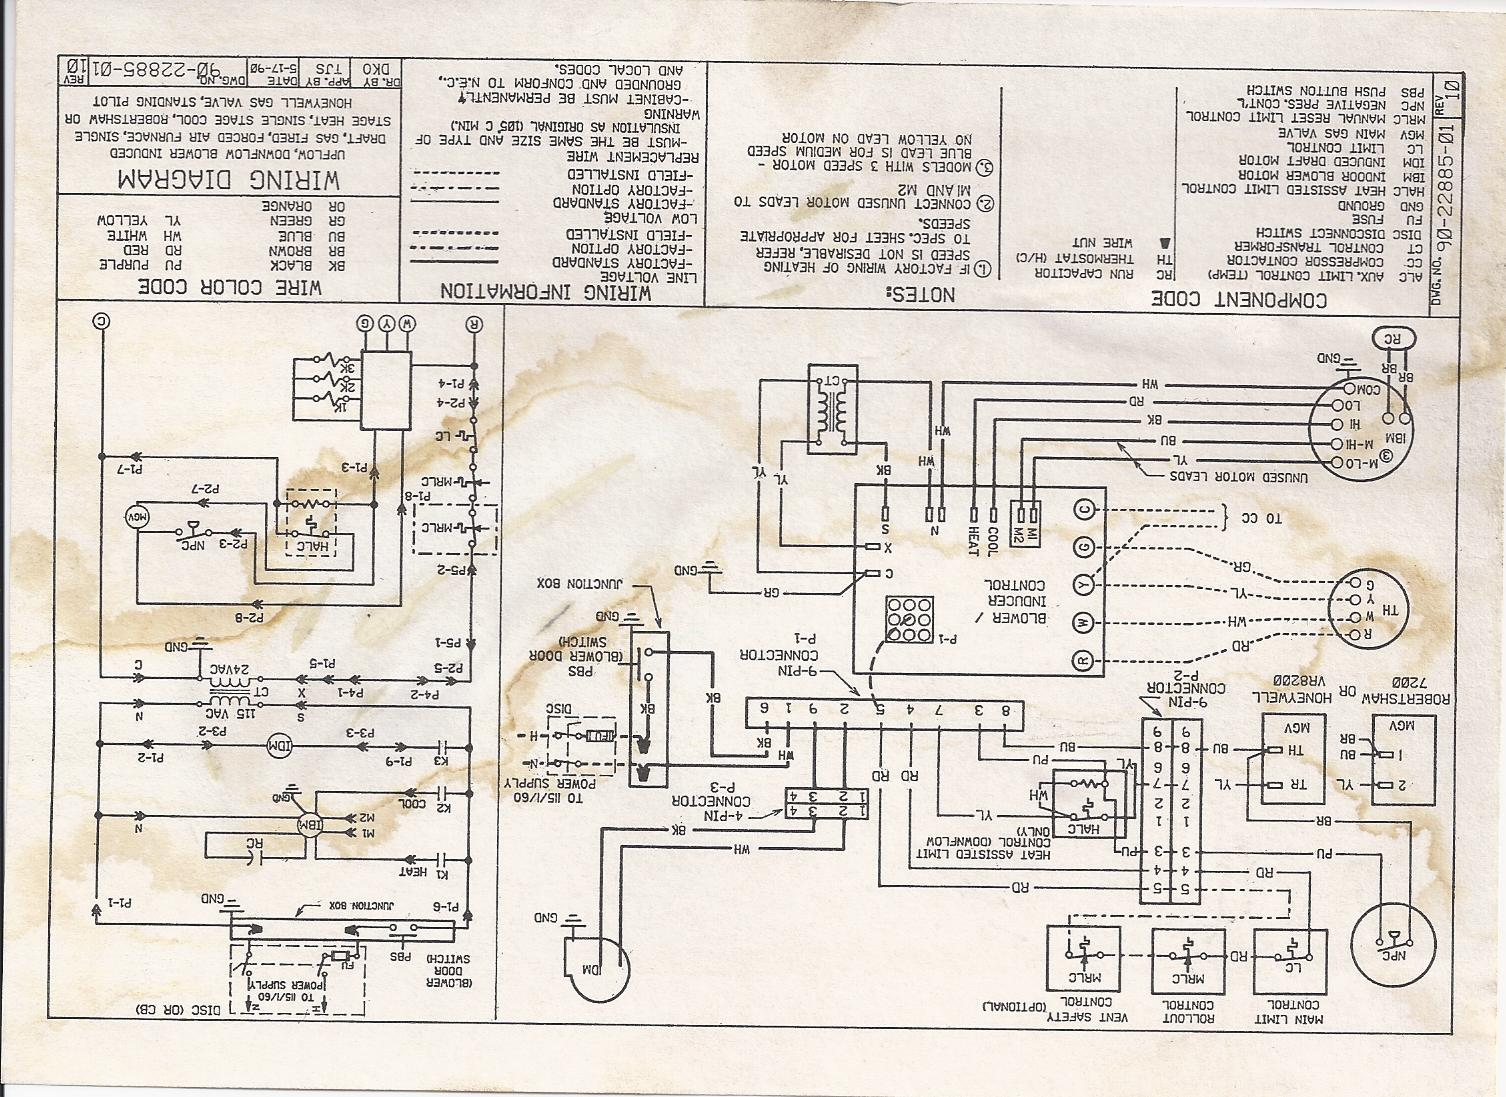 ruud urgg wiring diagrams electrical diagrams forum u2022 rh jimmellon co uk ruud air conditioner wiring diagram